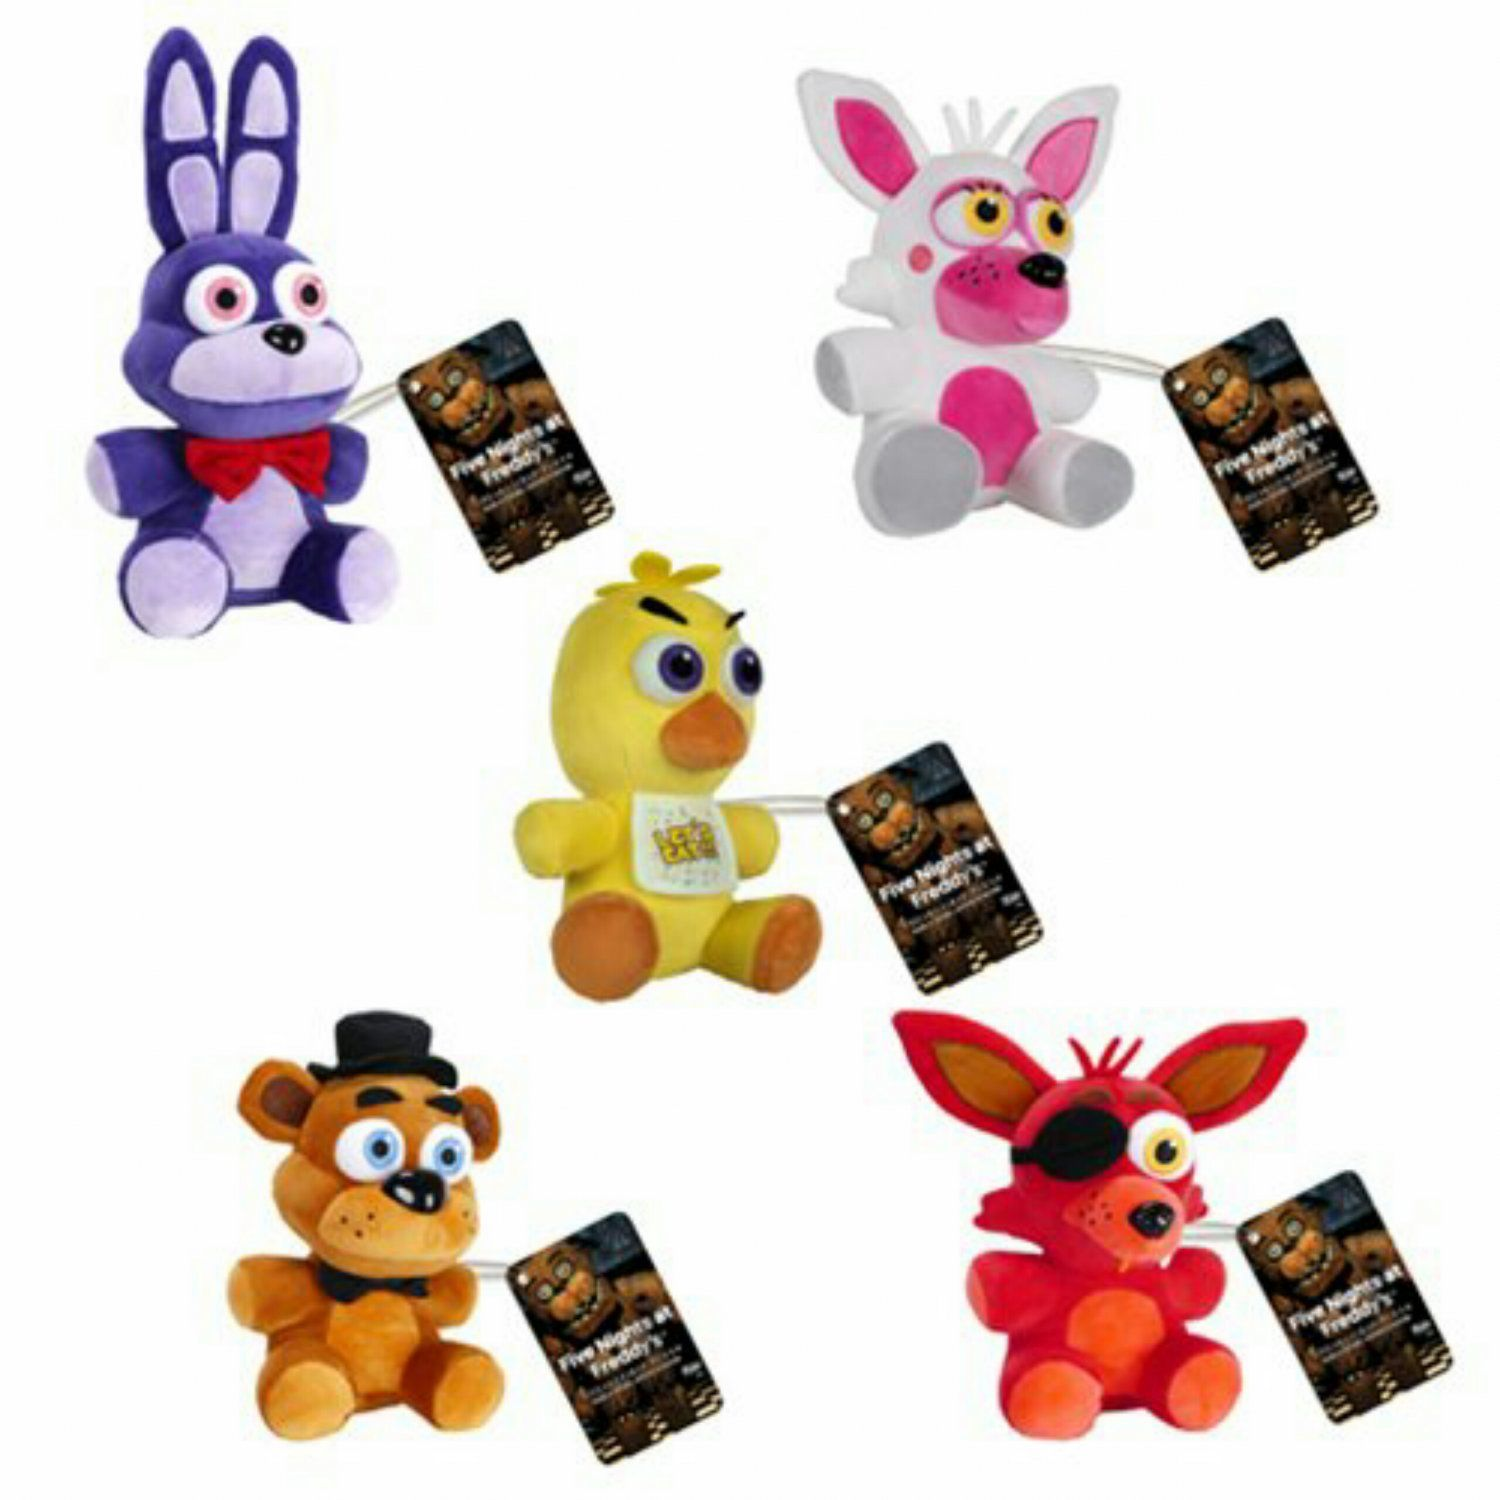 How to make your own five nights at freddys foxy plush - Funko Five Nights At Freddy S Fnaf Set Of 5 Collectible 6 Plush Toy Figures